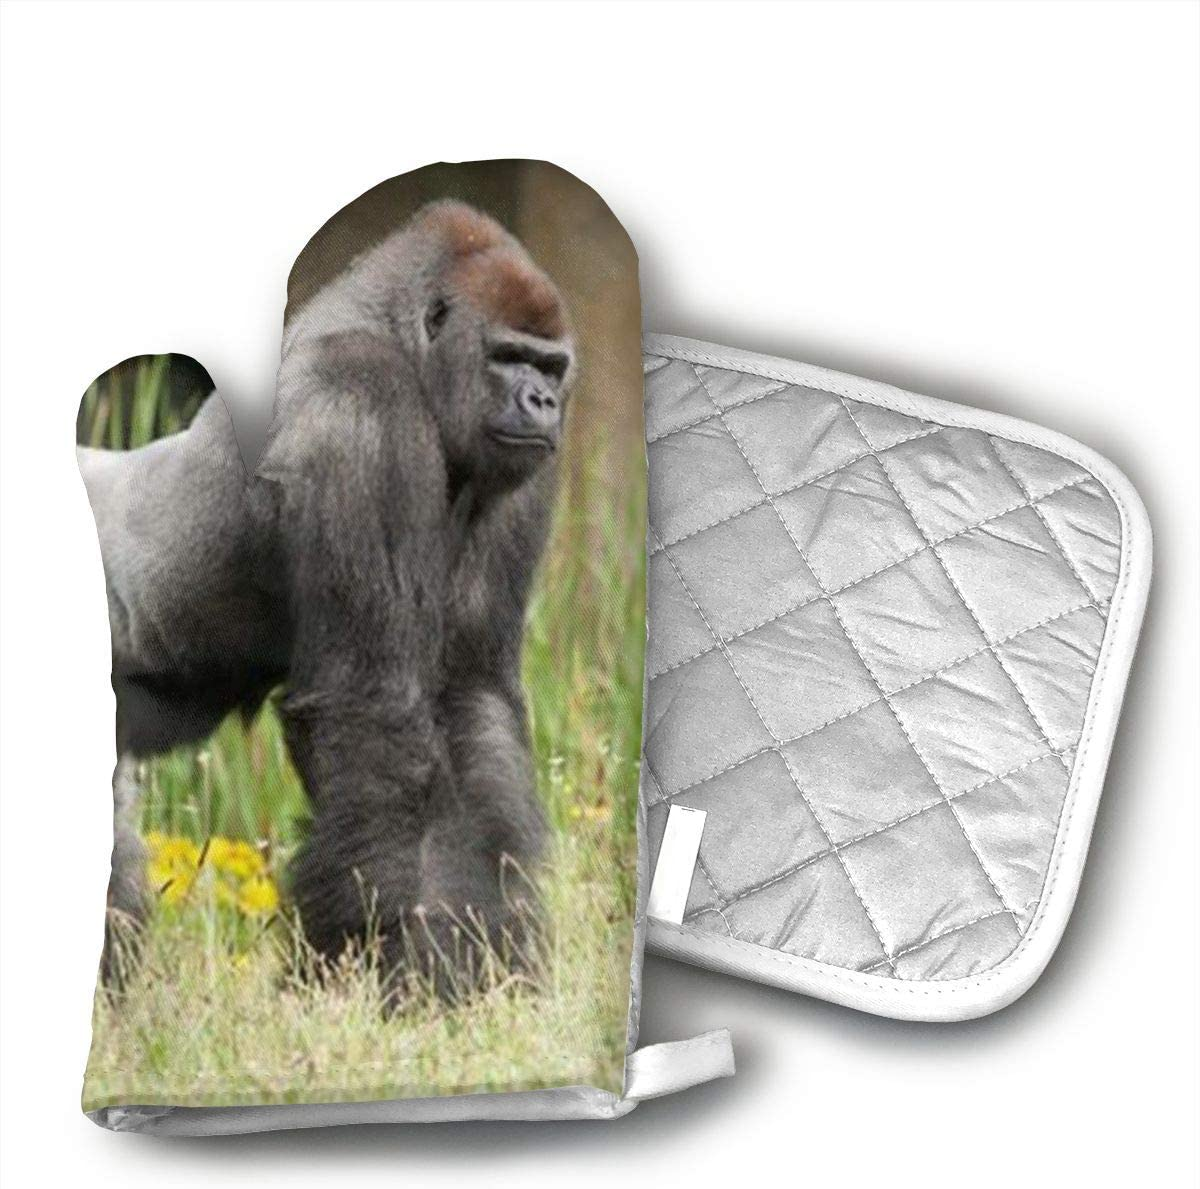 HiHMJ Gorilla in The Green Grass Art Print Oven Mitts, with The Heat Resistance of Silicone and Flexibility of Cotton, Recycled Cotton Infill, Terrycloth Lining,